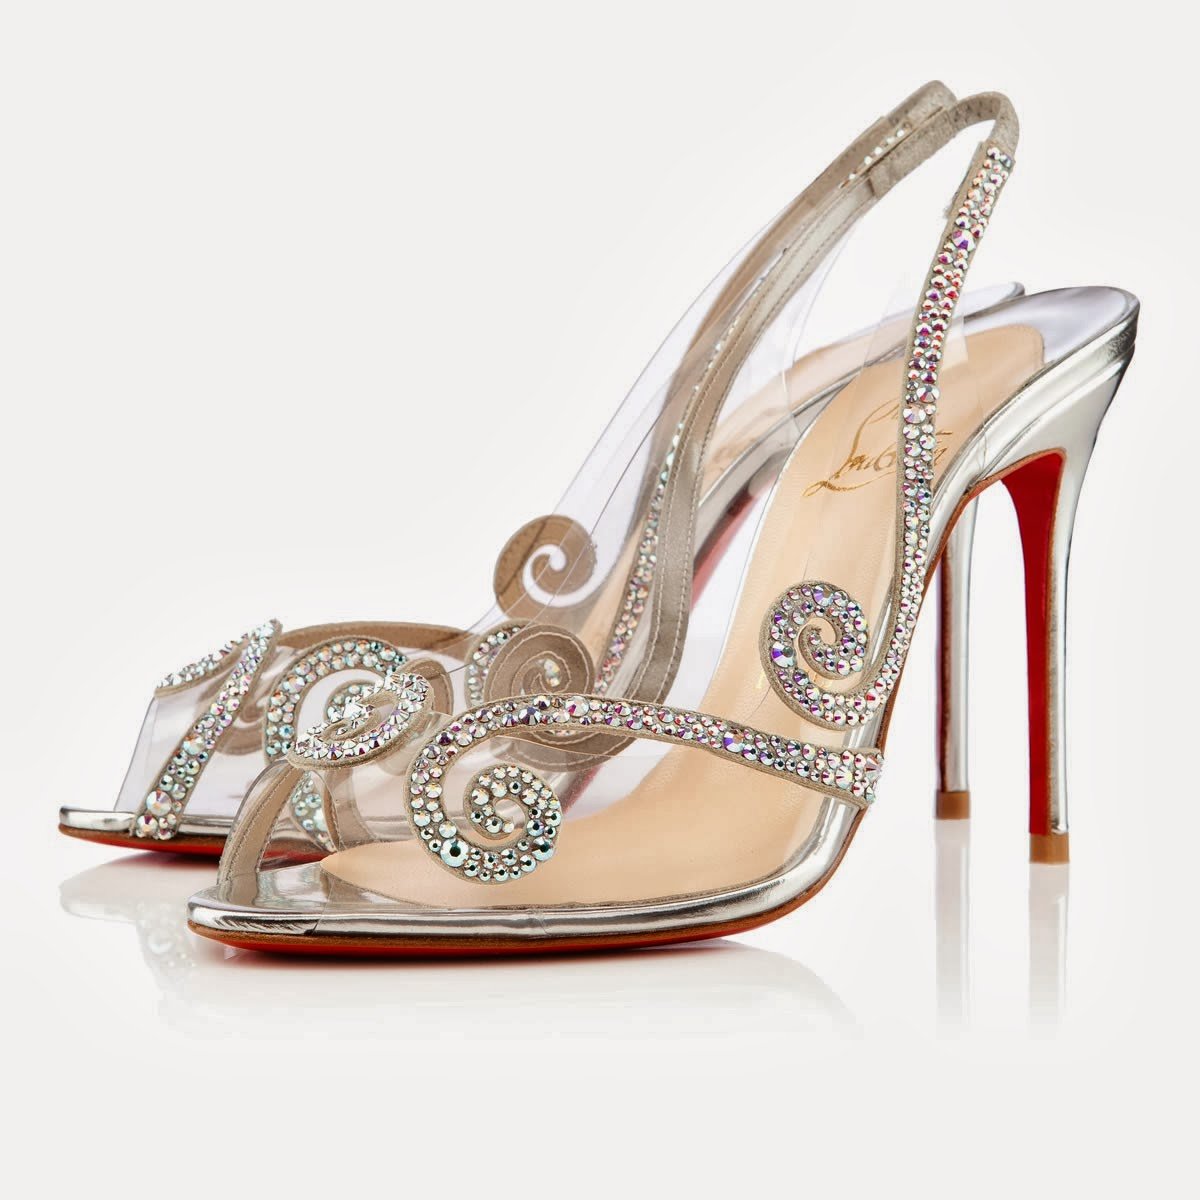 where to buy christian louboutin shoes in the uk - Obsidian . 2b75b2bb3